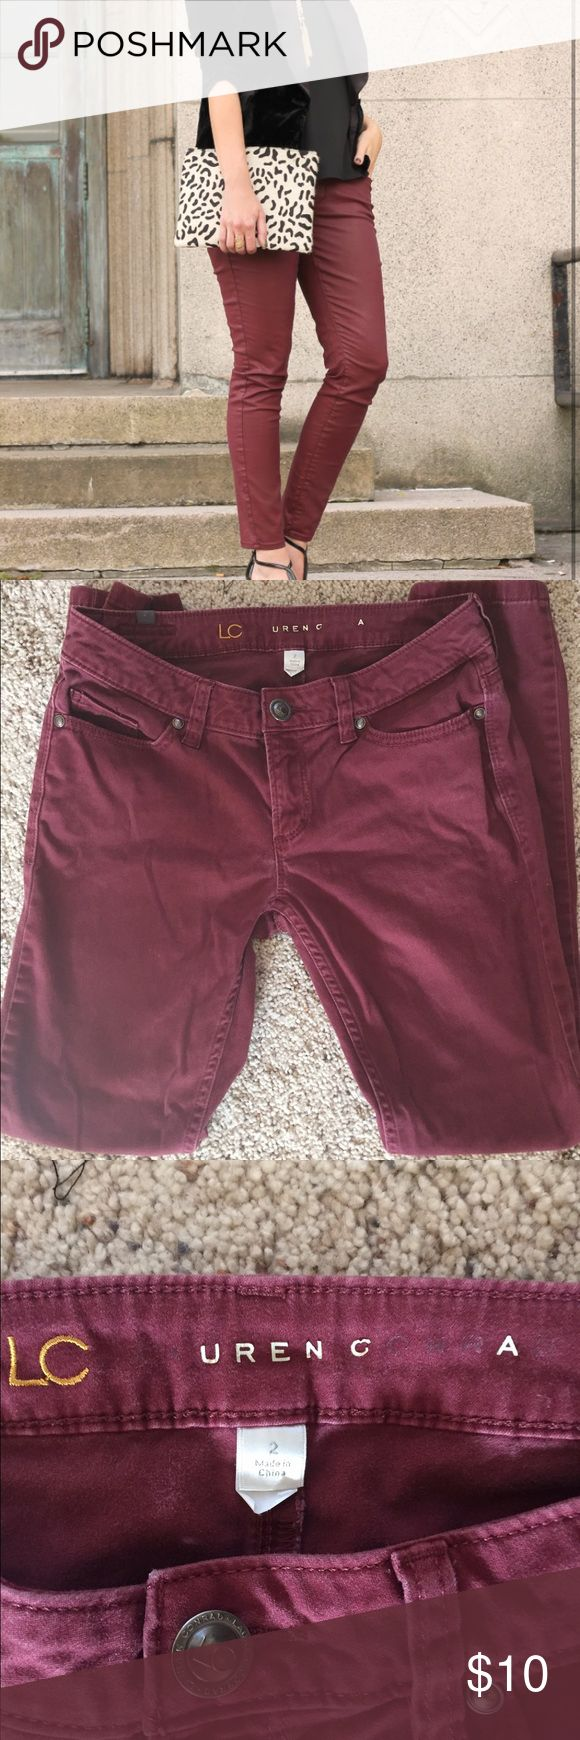 "Lauren Conrad Burgundy Skinny Jeans Good used condition Lauren Conrad burgundy skinny jeans. These have been worn many times and are a bit faded as seen in the photos. ""Lauren Conrad"" emblem on the inside of jeans is faded. LC Lauren Conrad Jeans Skinny"